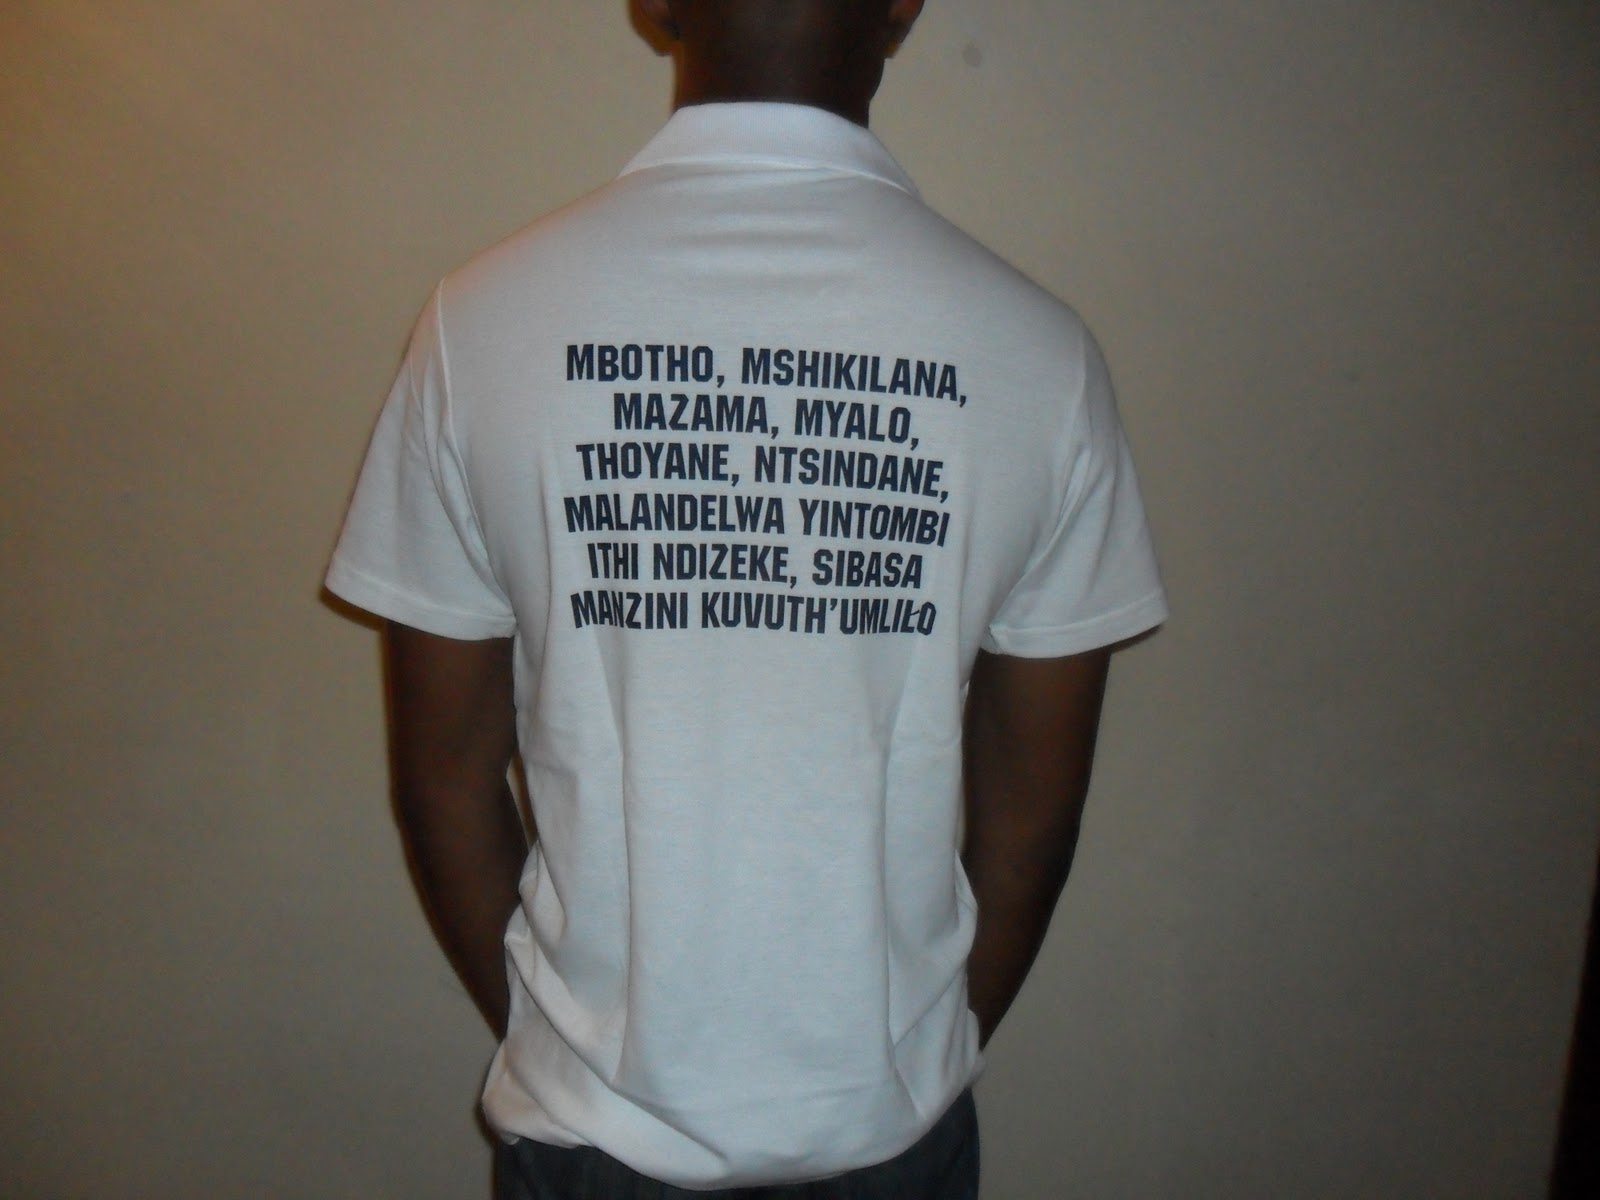 The organisers are encouraged to design t shirts for this gathering as it was done for the gathering in harding kzn the current mbotho emblem can be used